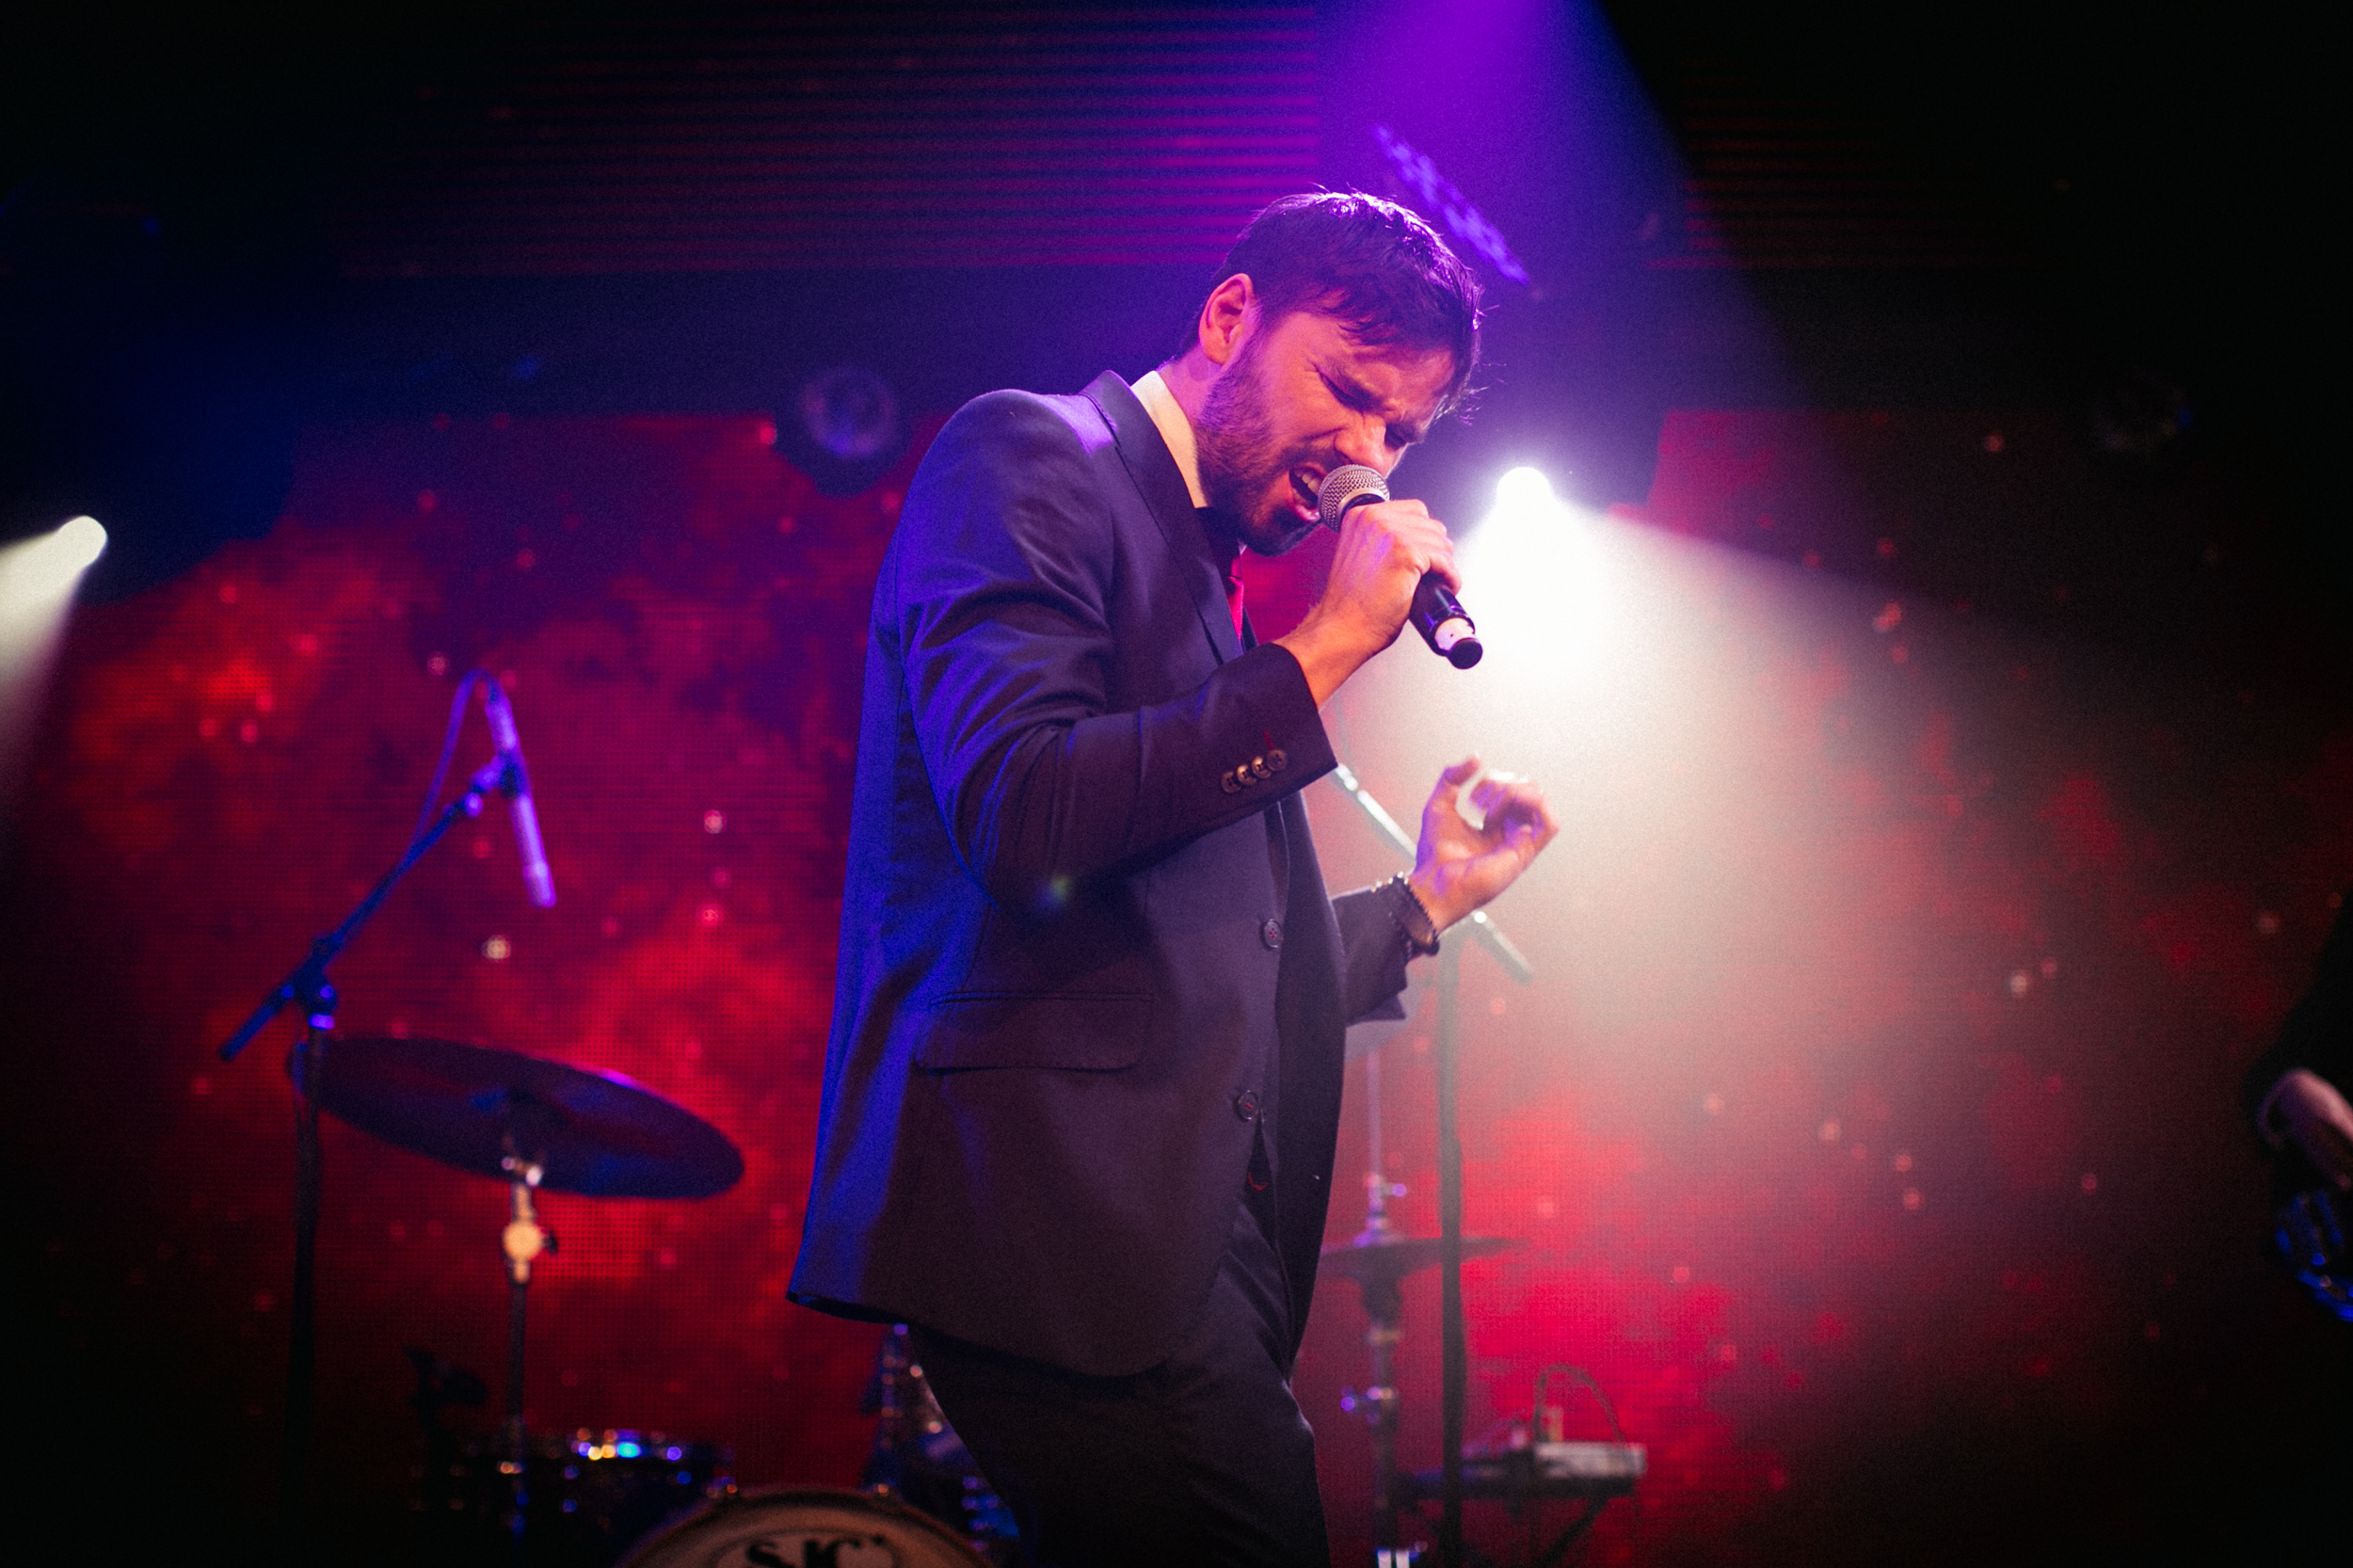 Sean Rumsey vocalist in band for hire